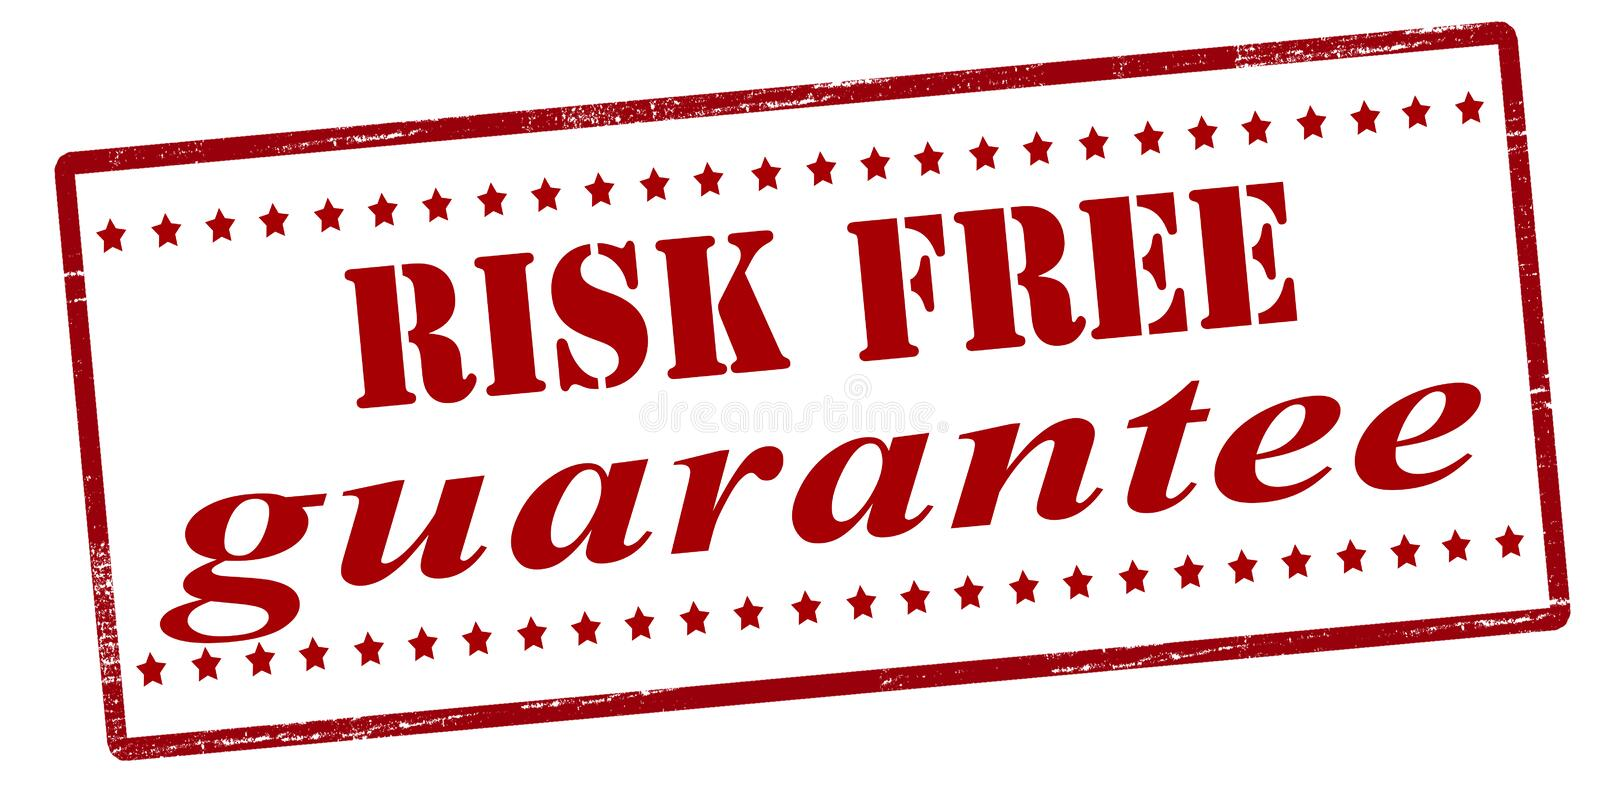 Risk free guarantee. Stamp with text risk free guarantee inside, illustration royalty free illustration